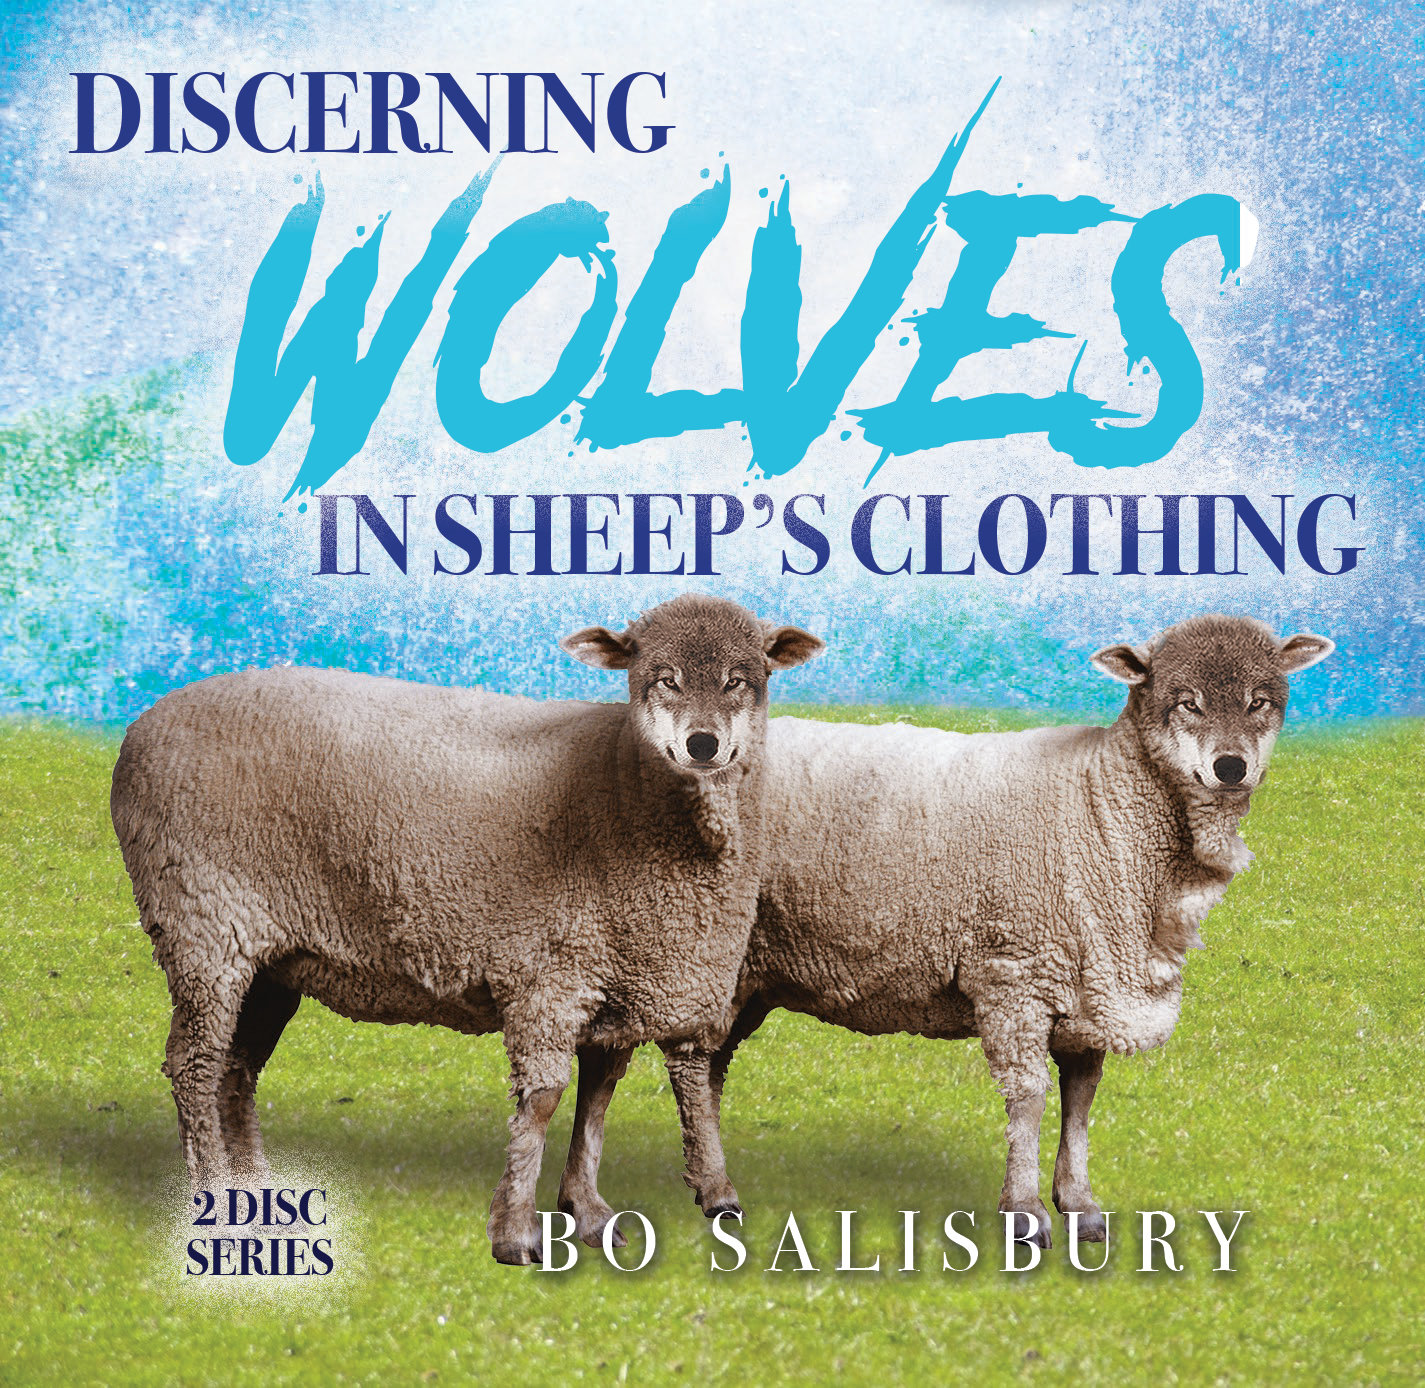 Discerning Wolves in Sheep's Clothing (MP3 download)